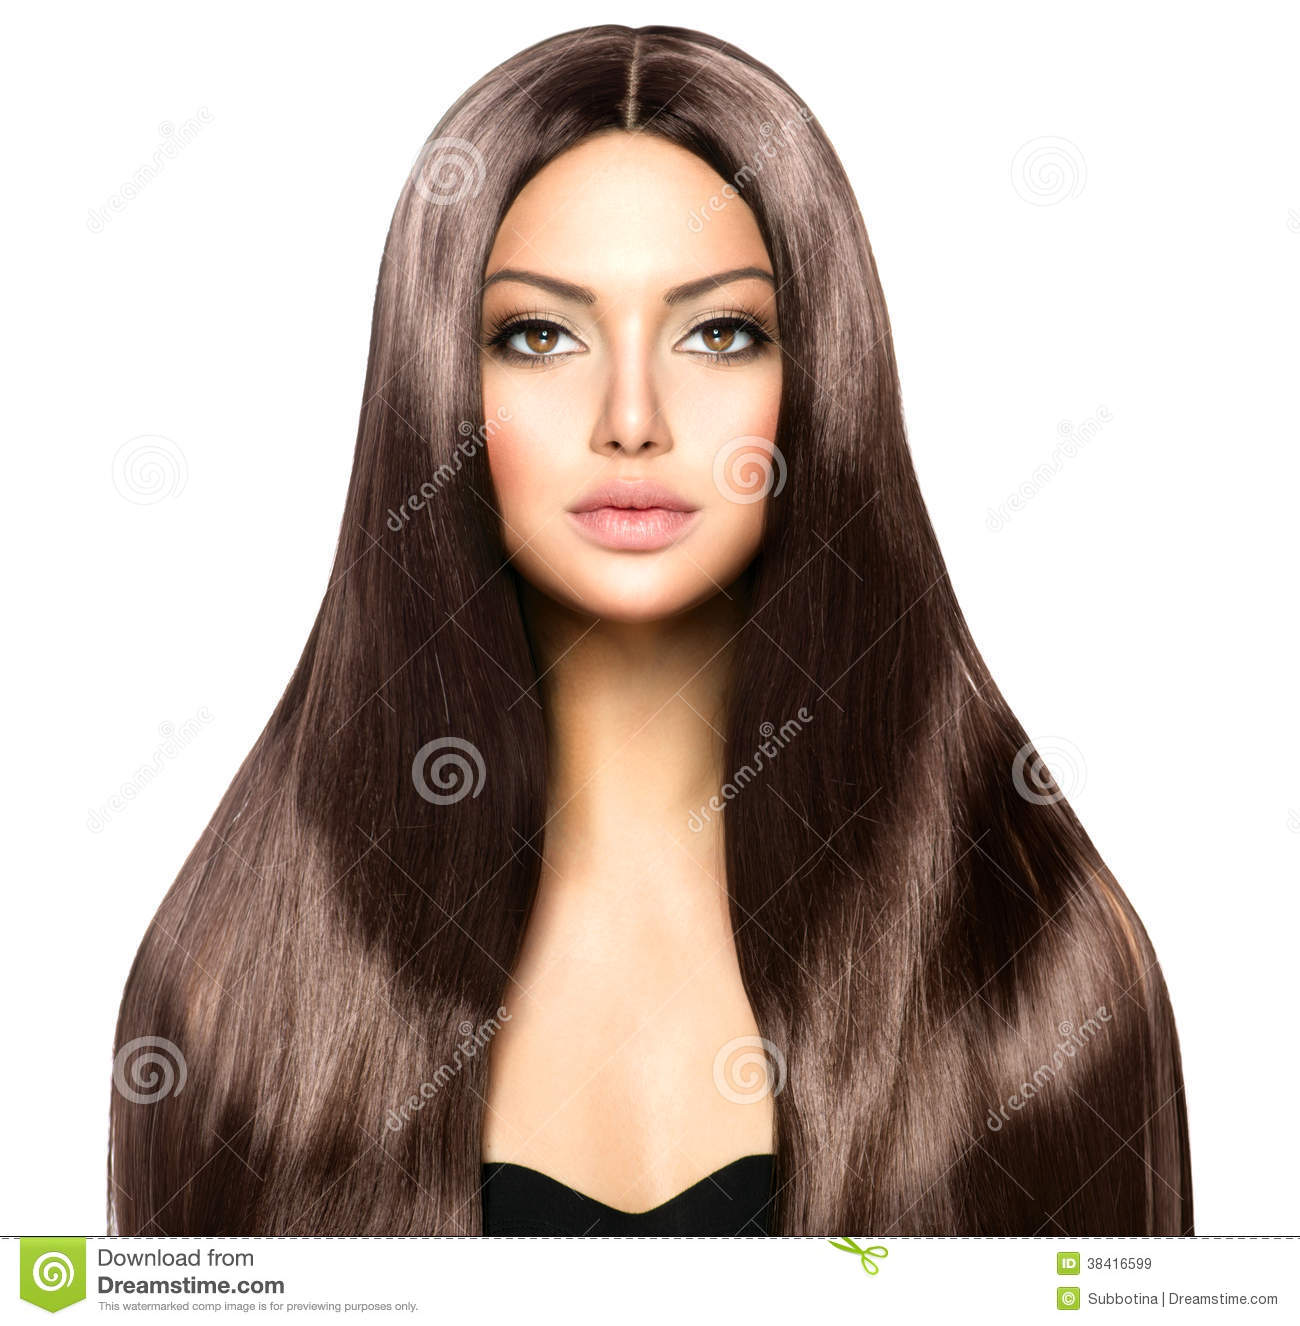 Woman With Long Brown Hair Royalty Free Stock Images